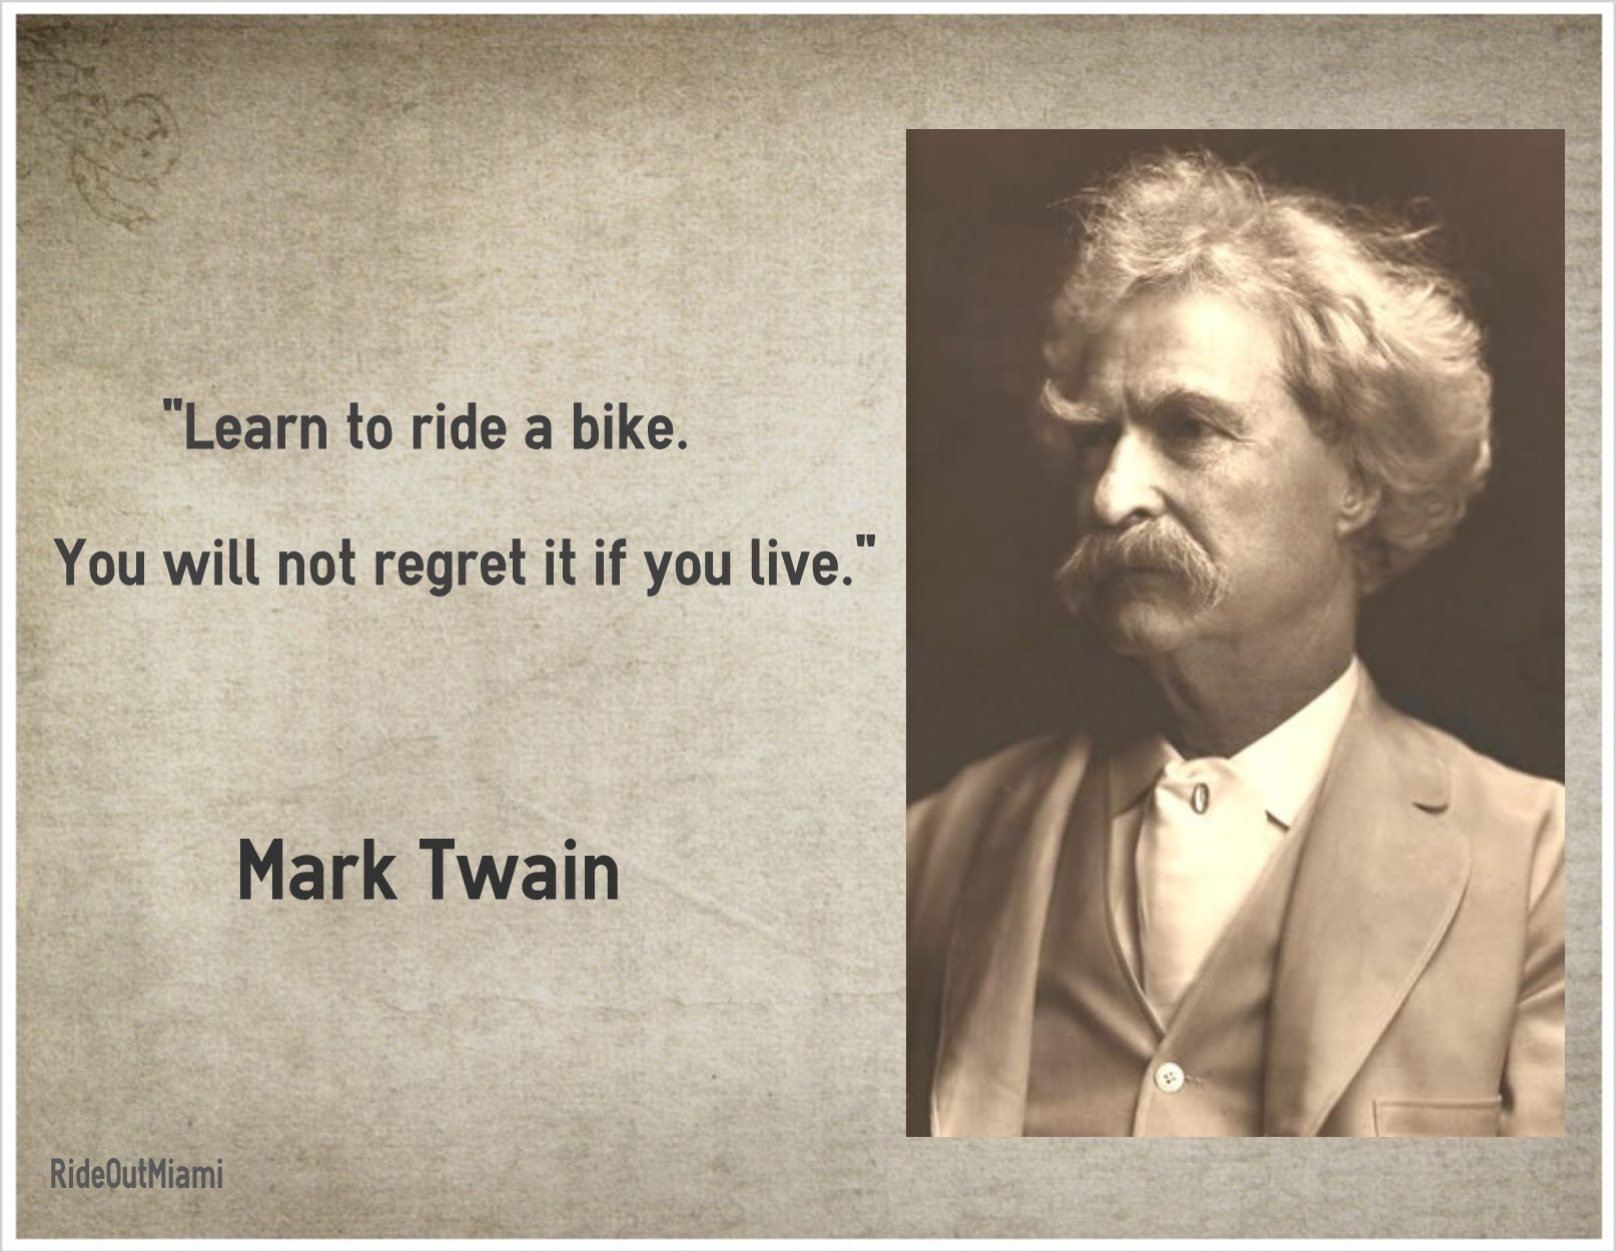 Mark Twain Quotes Famous Bike Quote  Mark Twain  Mark Twain